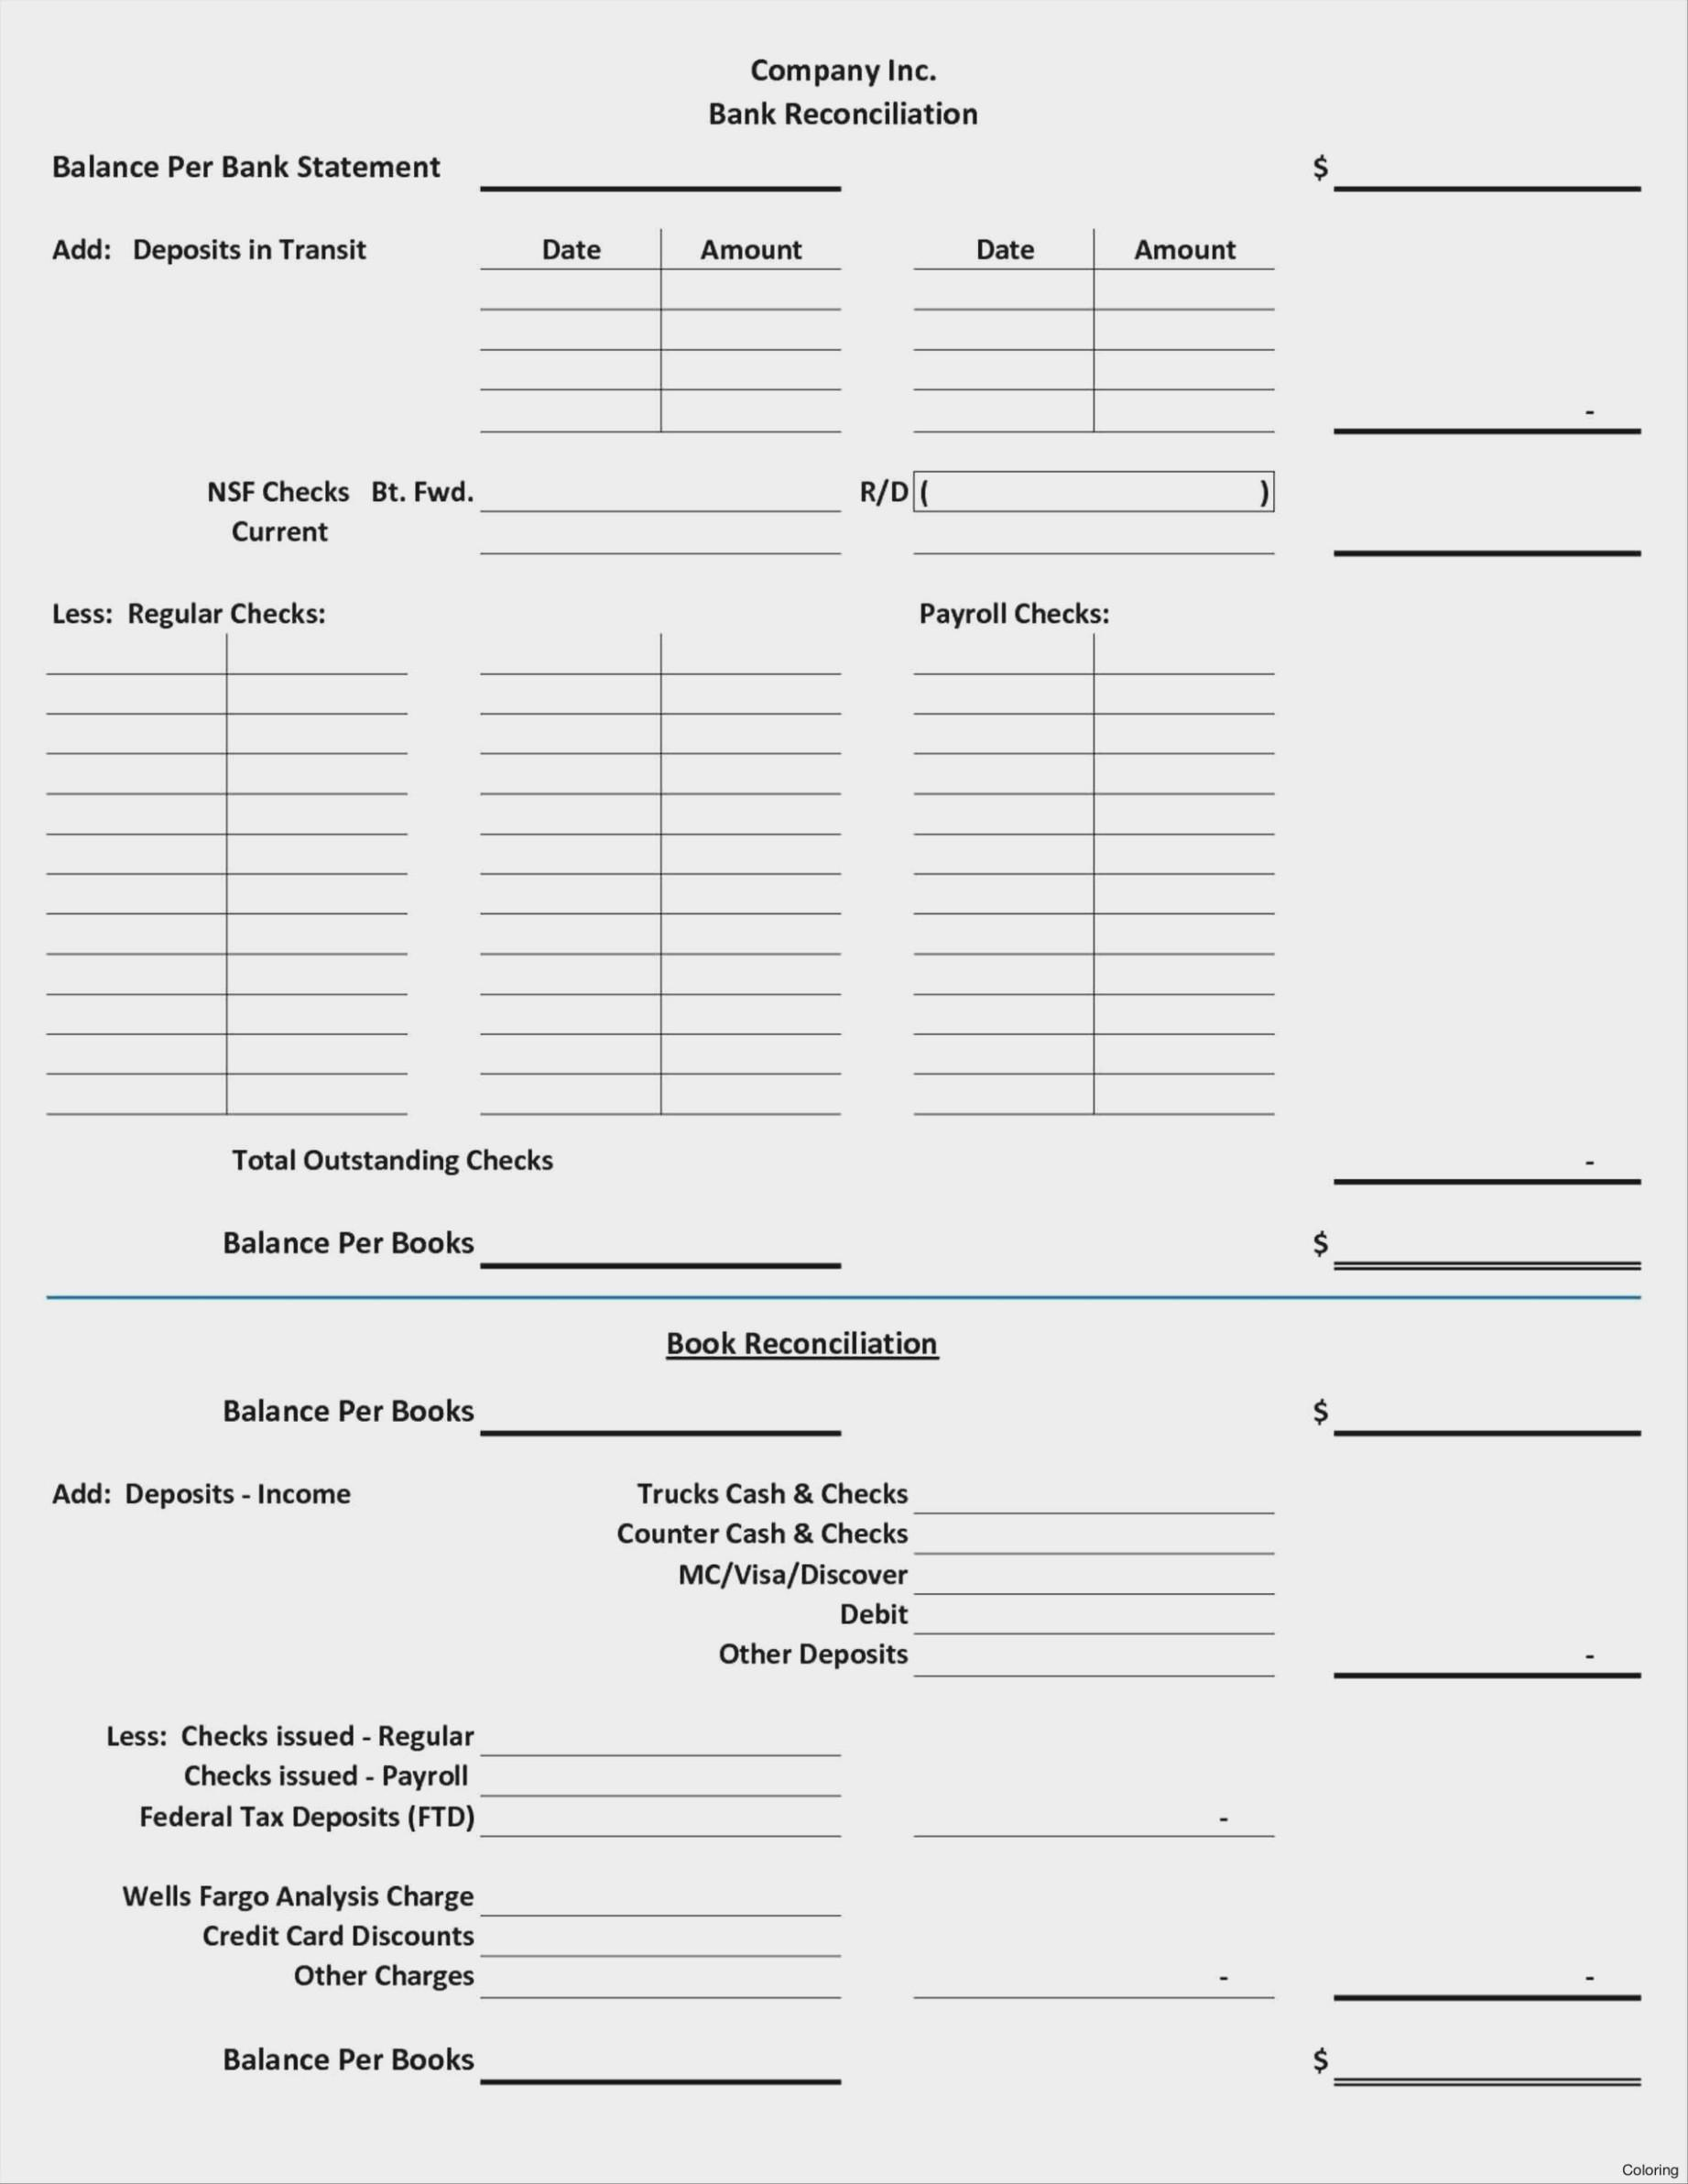 Bank Reconciliation Spreadsheet Template